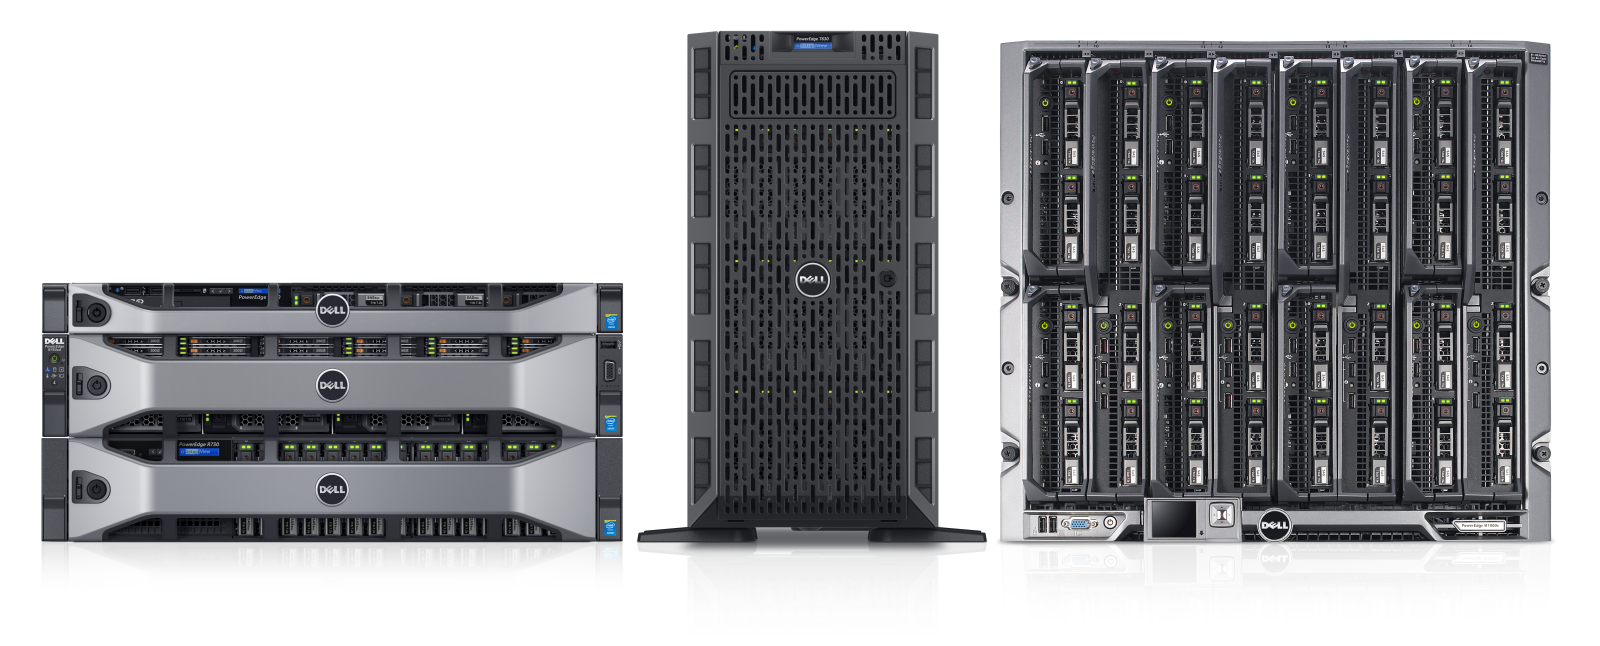 PowerEdge 13G